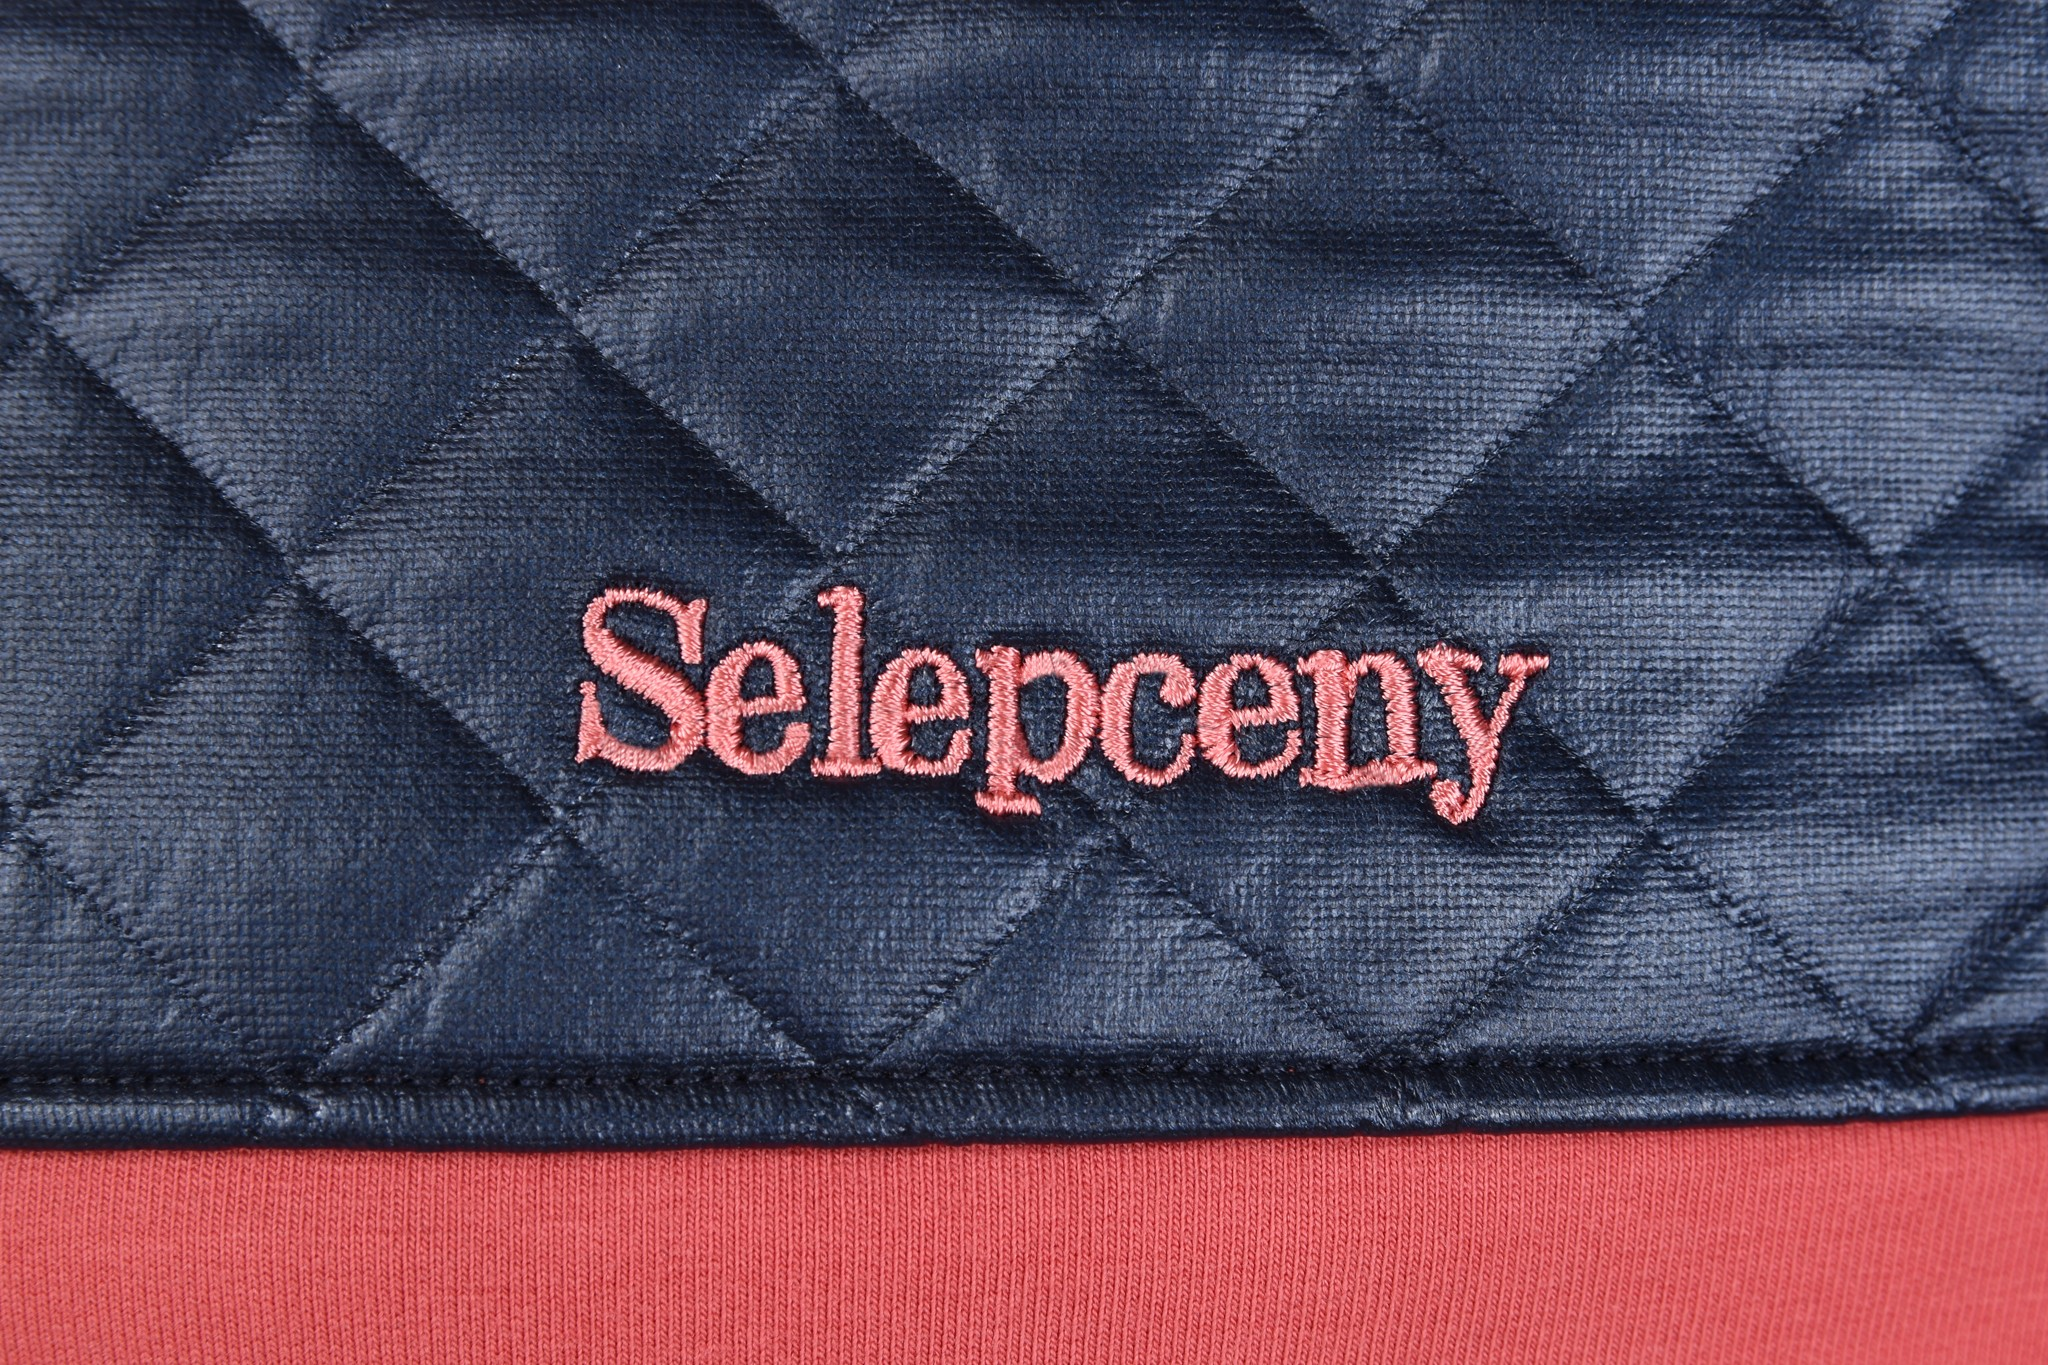 SELEPCENY Cotton Sweatshirt